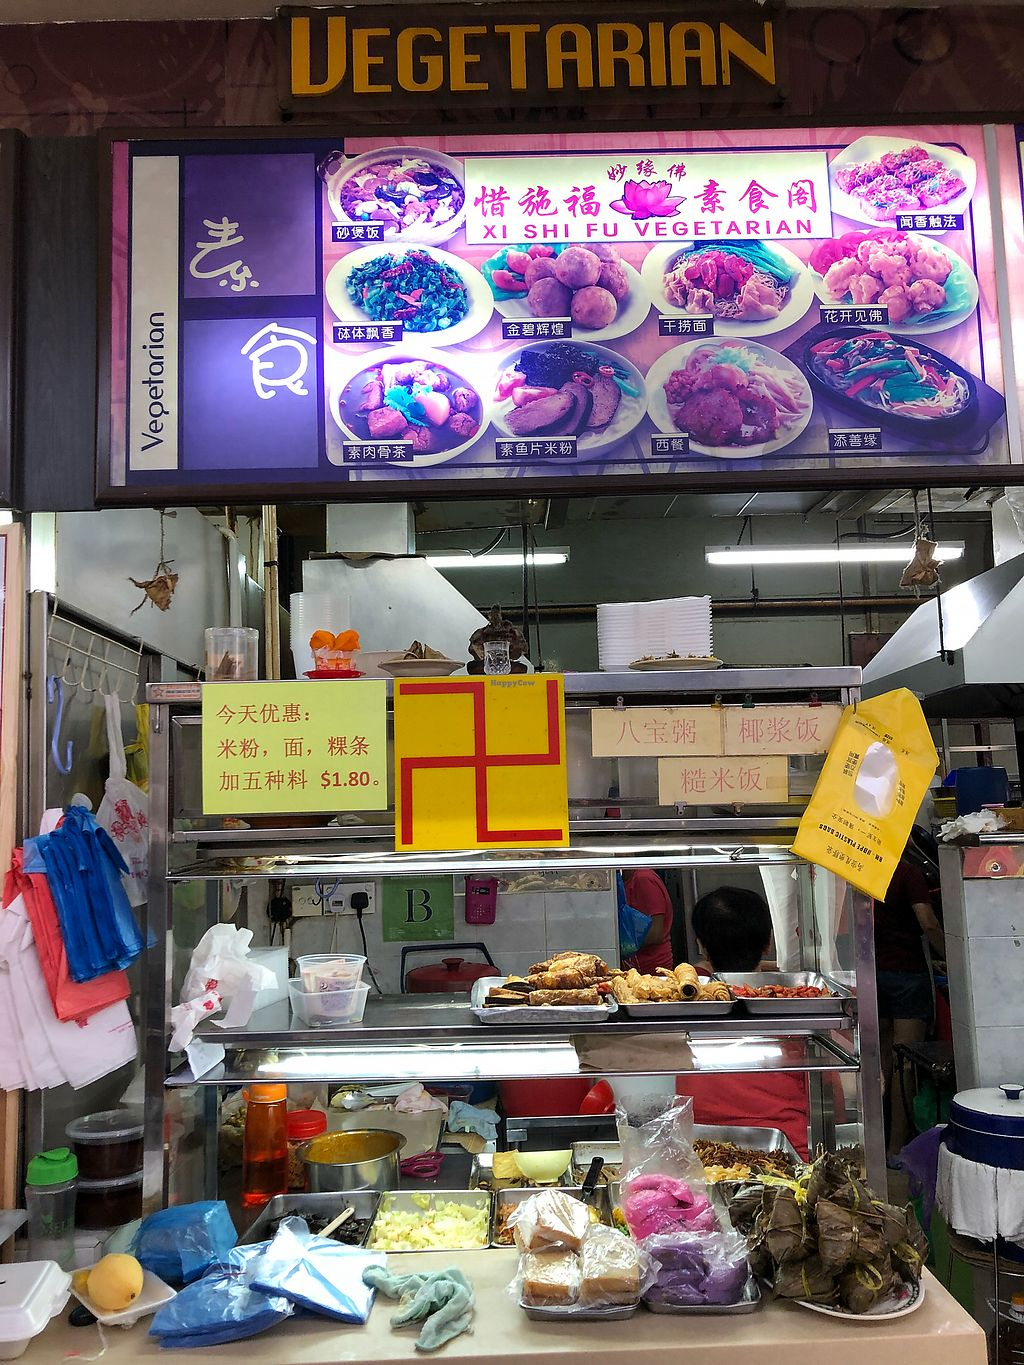 """Photo of Xi Shi Fu Vegetarian Stall  by <a href=""""/members/profile/AmyLeySzeThoo"""">AmyLeySzeThoo</a> <br/>Stall front <br/> April 6, 2018  - <a href='/contact/abuse/image/102701/381406'>Report</a>"""